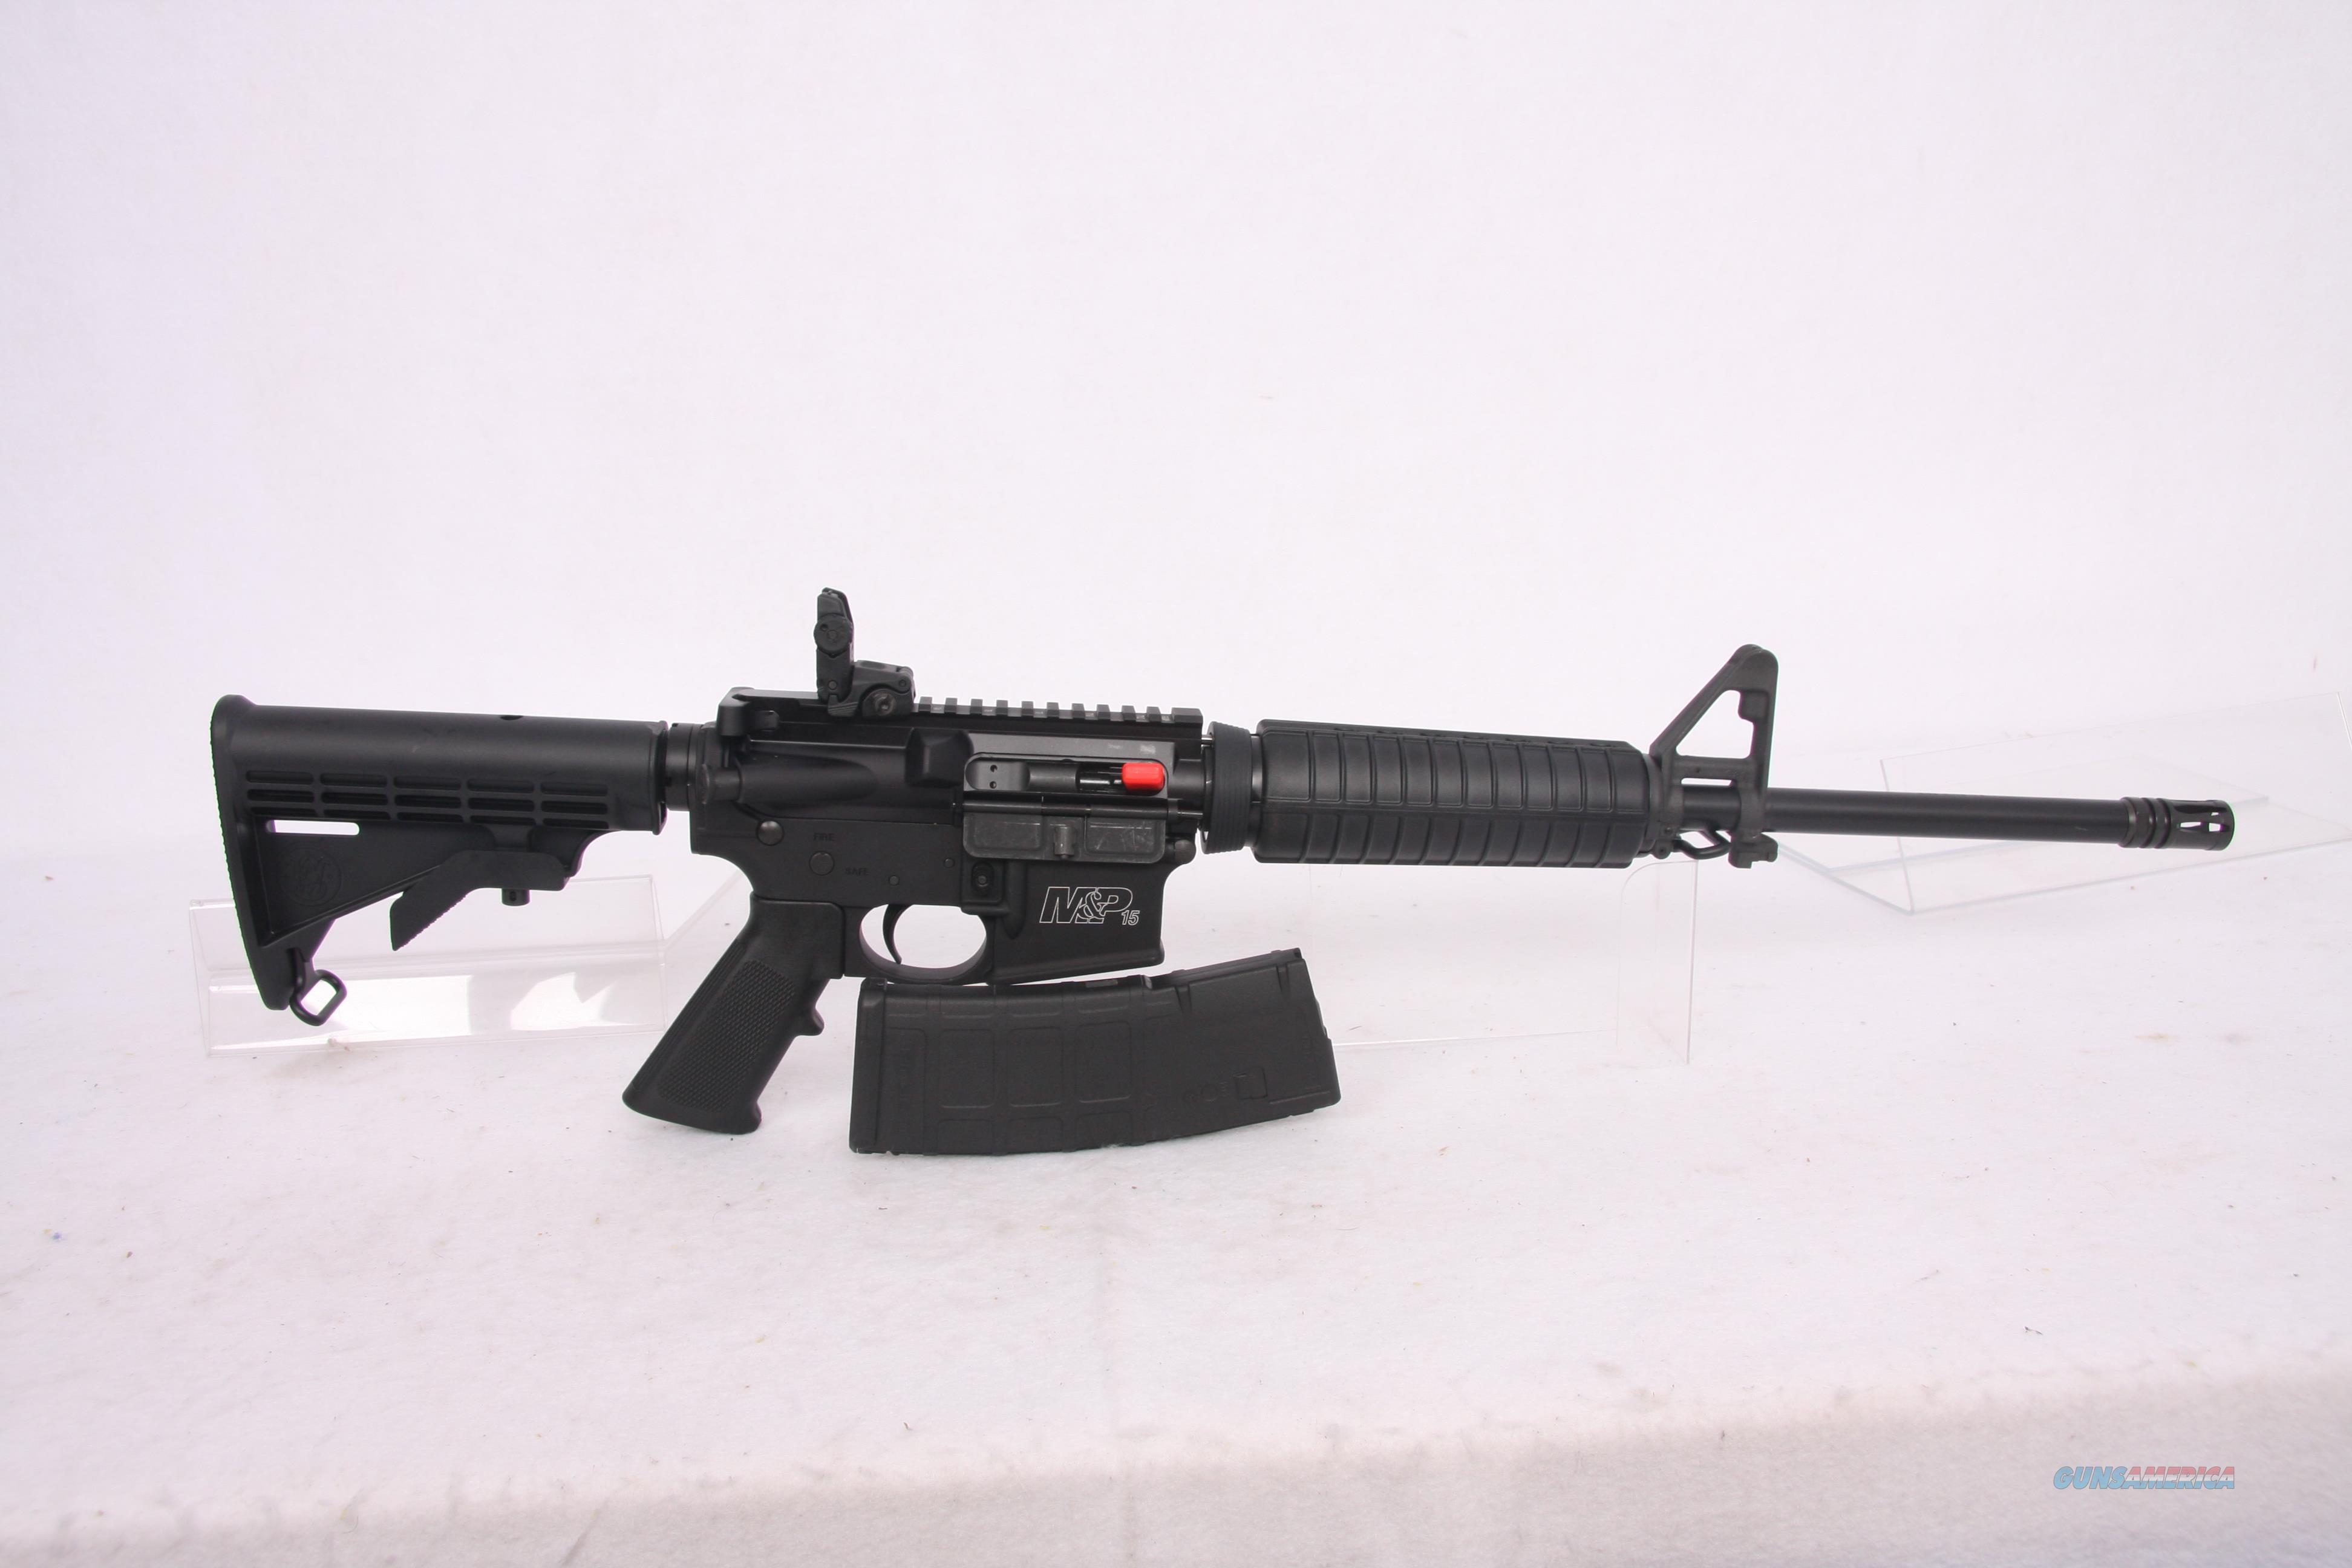 S&W M&P 15 Sport 2 5.56  Guns > Rifles > Smith & Wesson Rifles > M&P